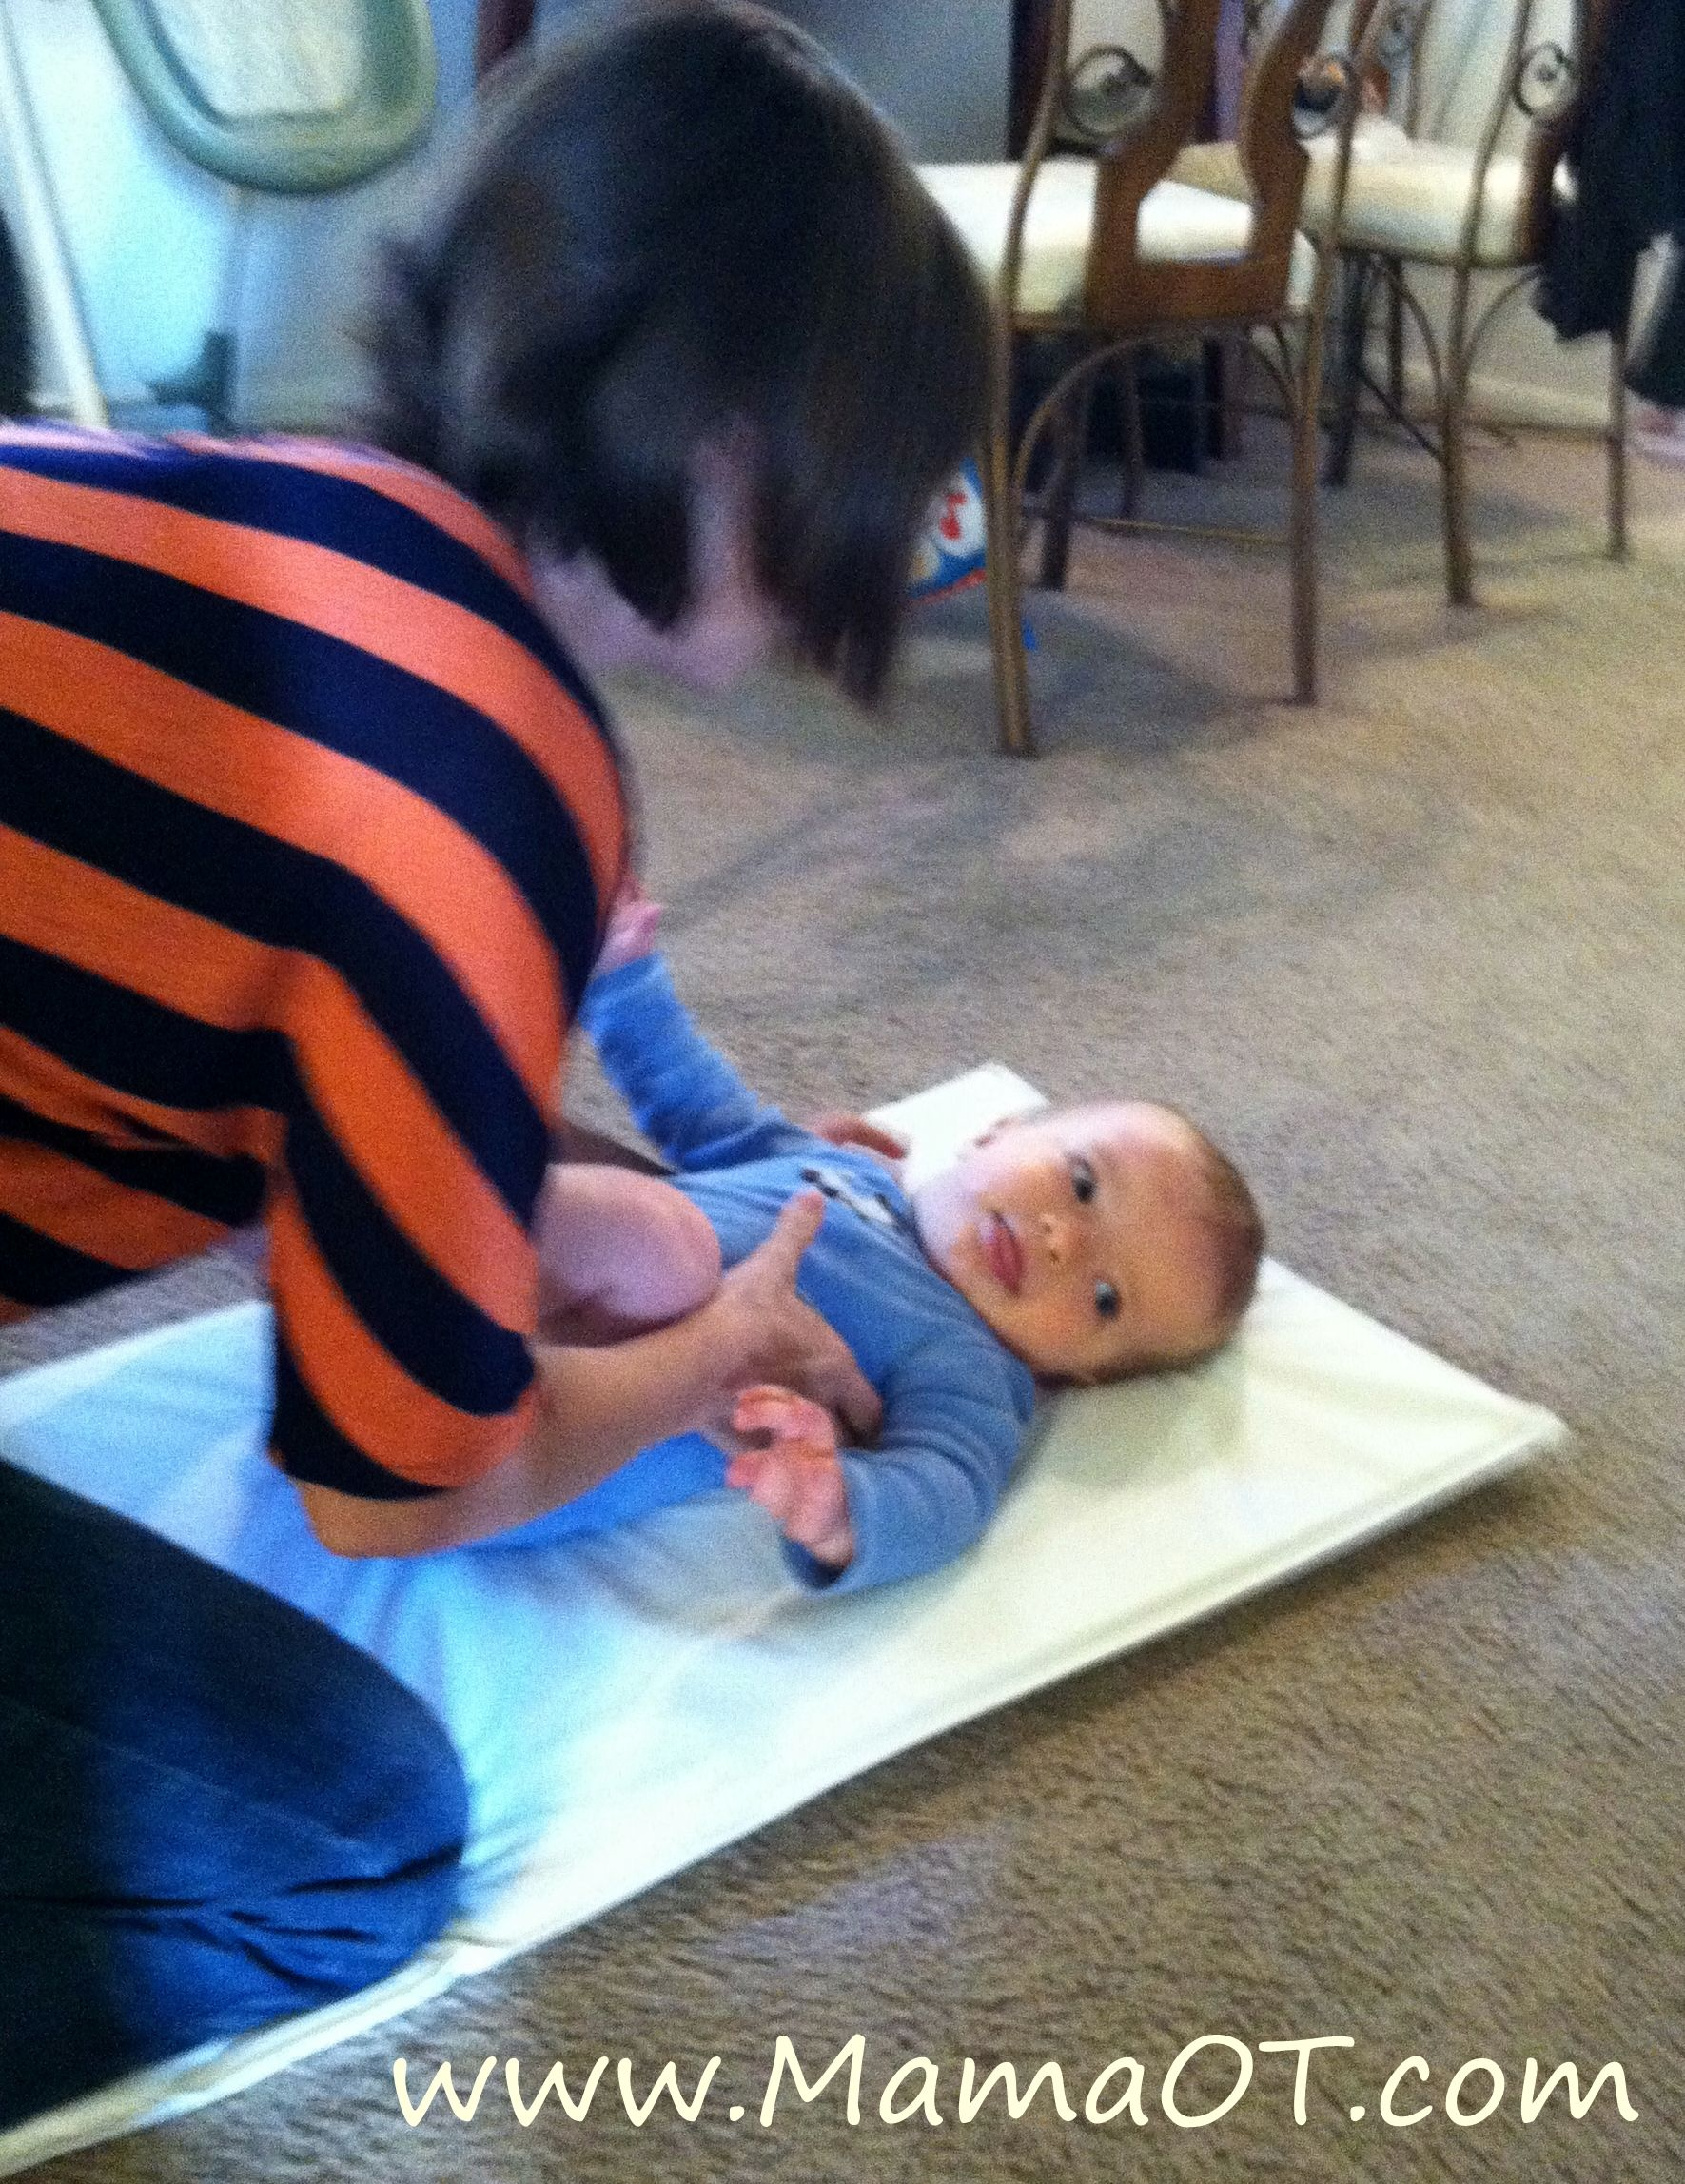 When Do Babies Roll Over? - Parents